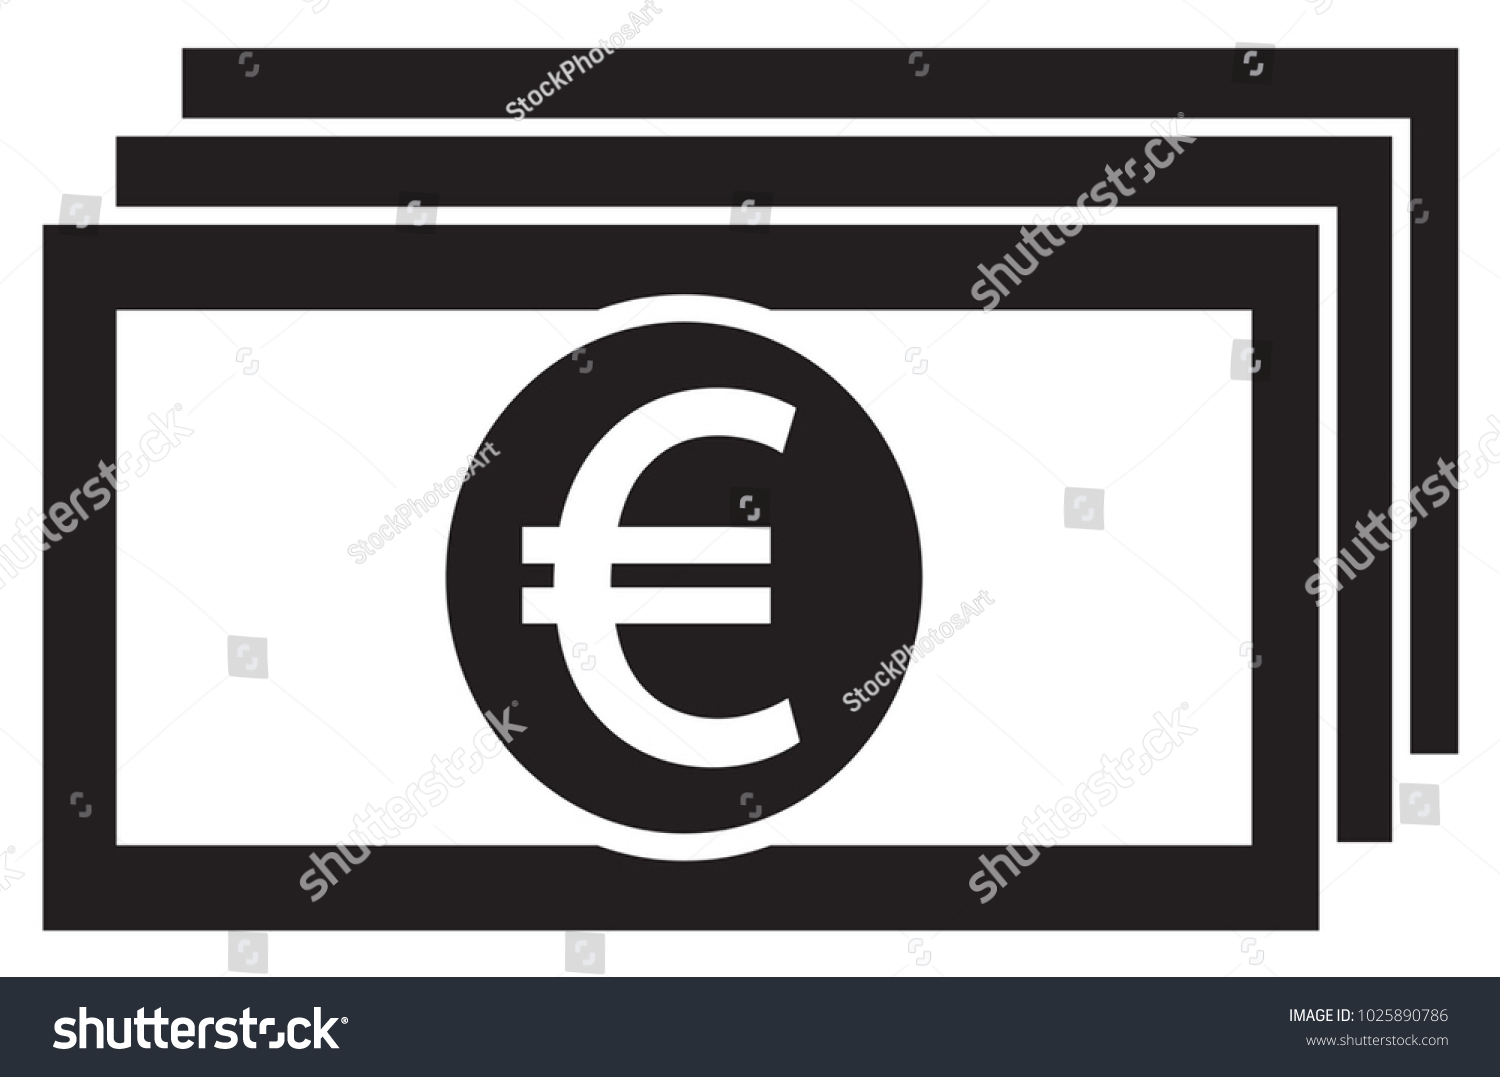 Euro currency icon logo vector on stock vector 1025890786 euro currency icon or logo vector on a bank note or bill symbol for european biocorpaavc Gallery